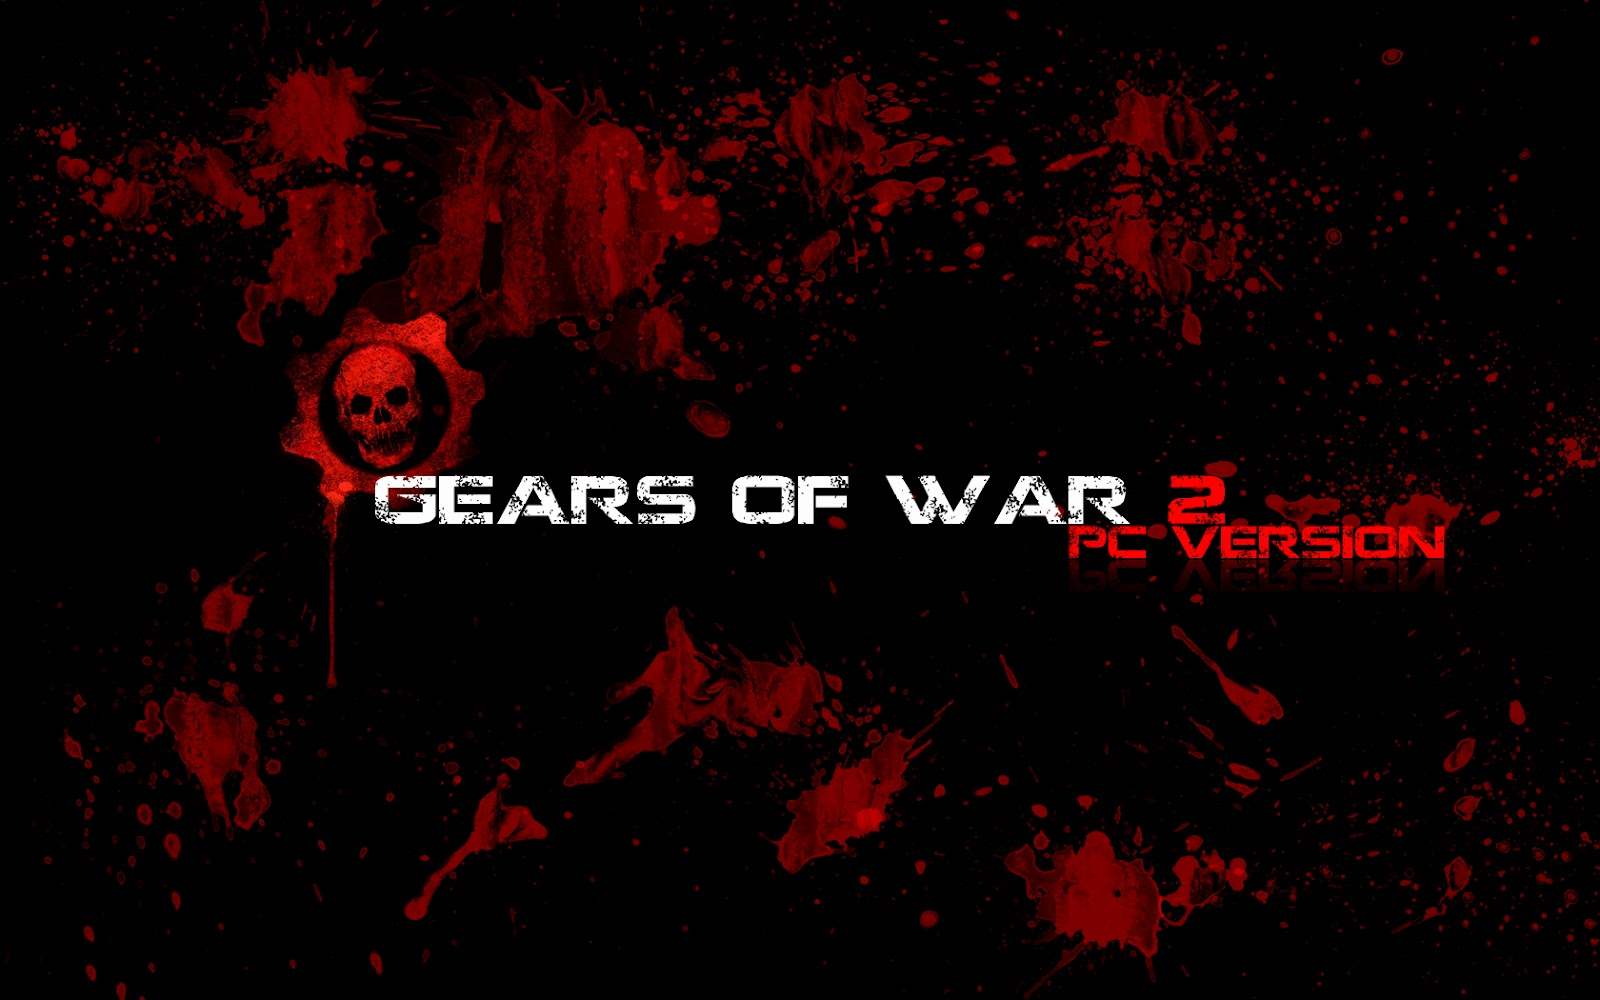 Gears Of War 3 Hd Wallpapers For Android: Wallpapers HD: Juego Gear Of War 1, 2, 3